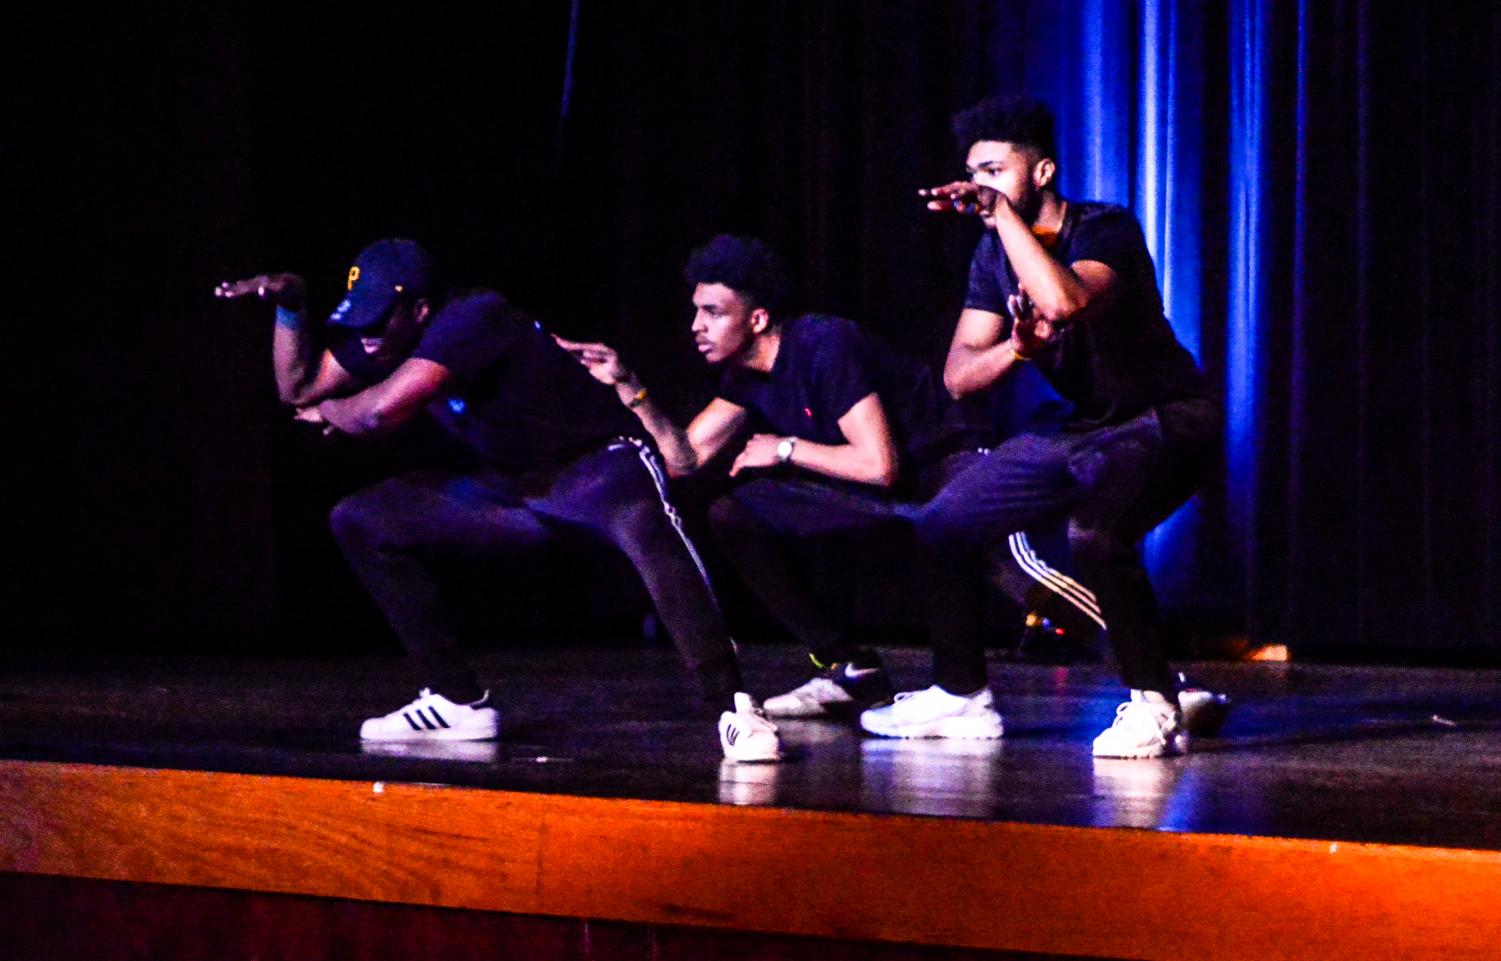 Students of Alpha Phi Alpha fraternity show pride for their Greek organizations at an annual talent show during Greek Week on Feb. 22 in the University Center Hamilton Room.